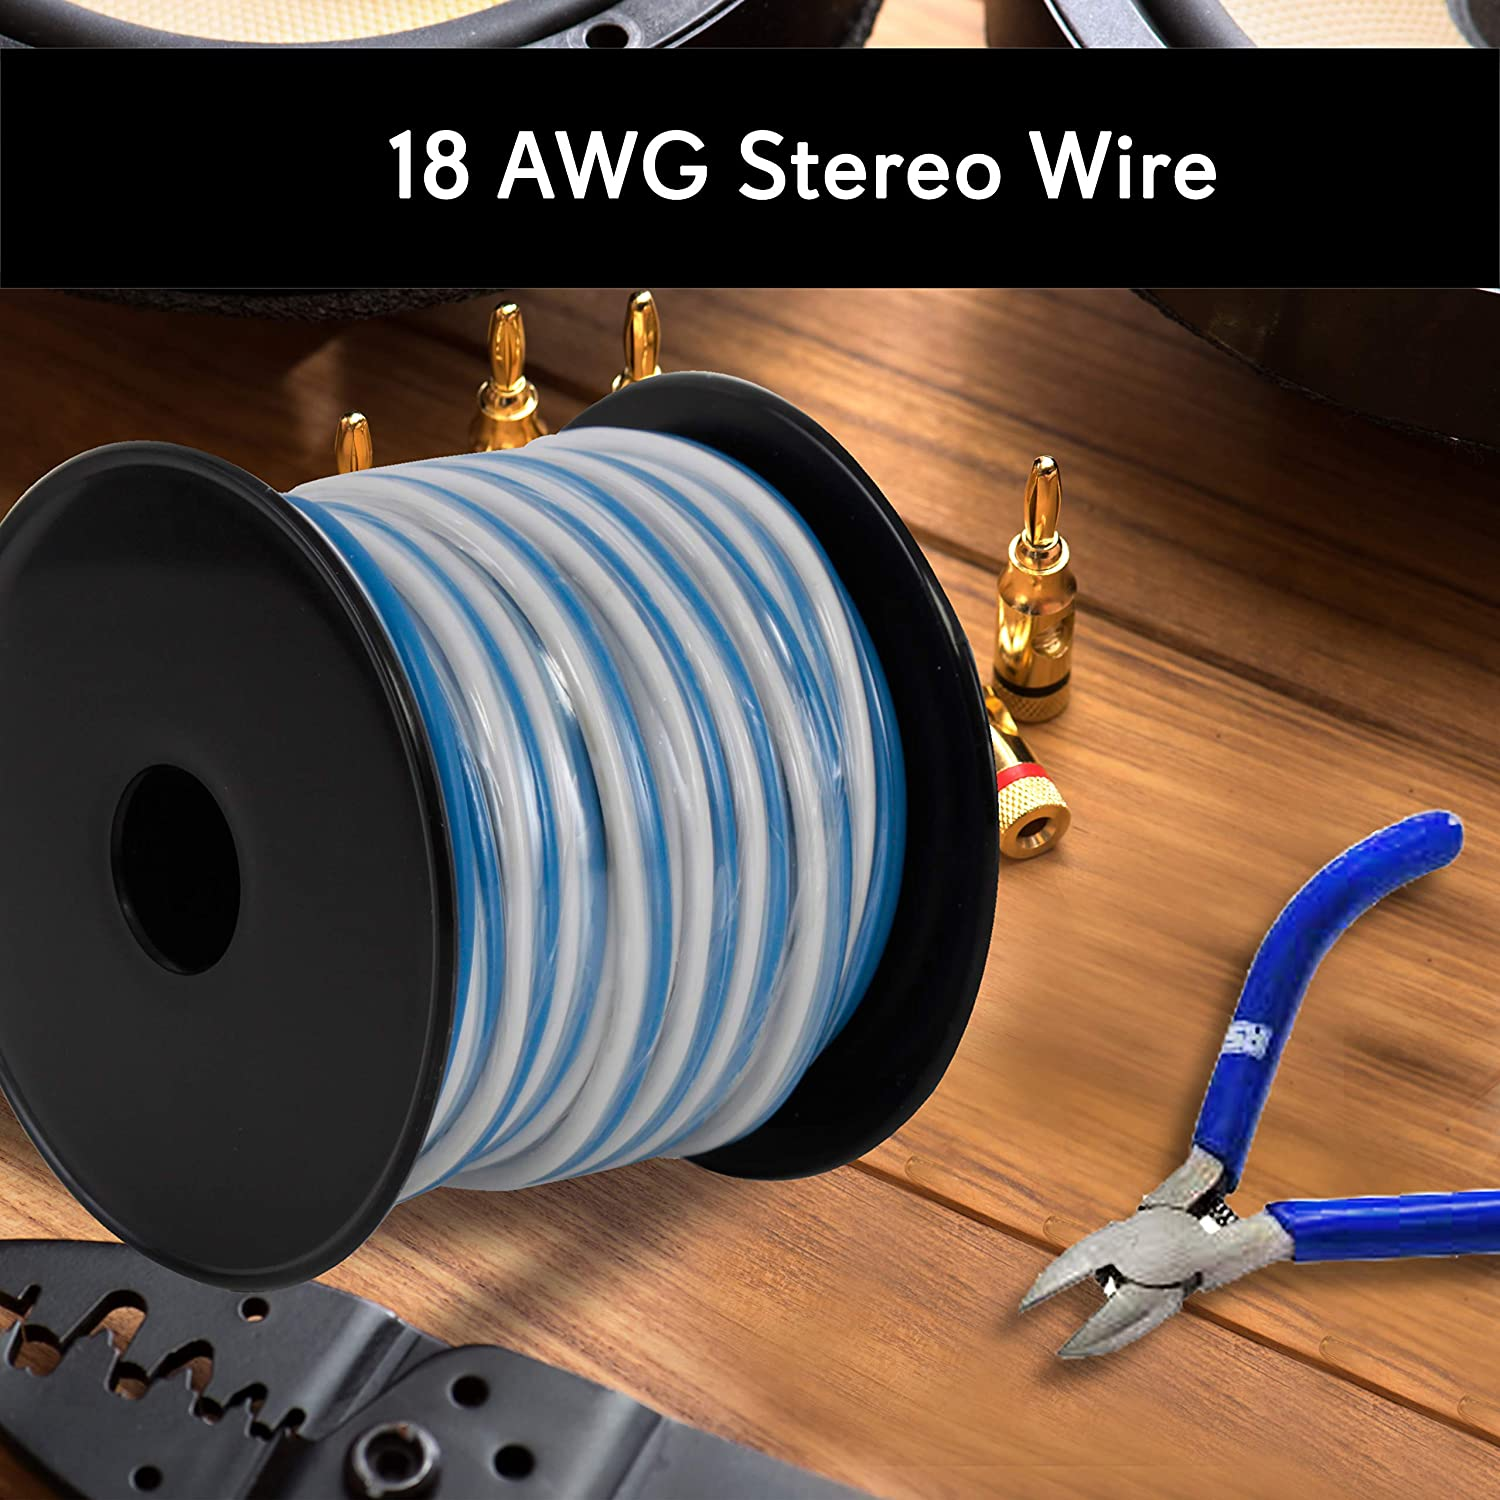 Surround Sound System TV Home Theater and Car Stereo Waterproof Marine Grade Cable in Spool for Connecting Audio Stereo to Amplifier PLMRSW50 50ft 18 Gauge Speaker Wire